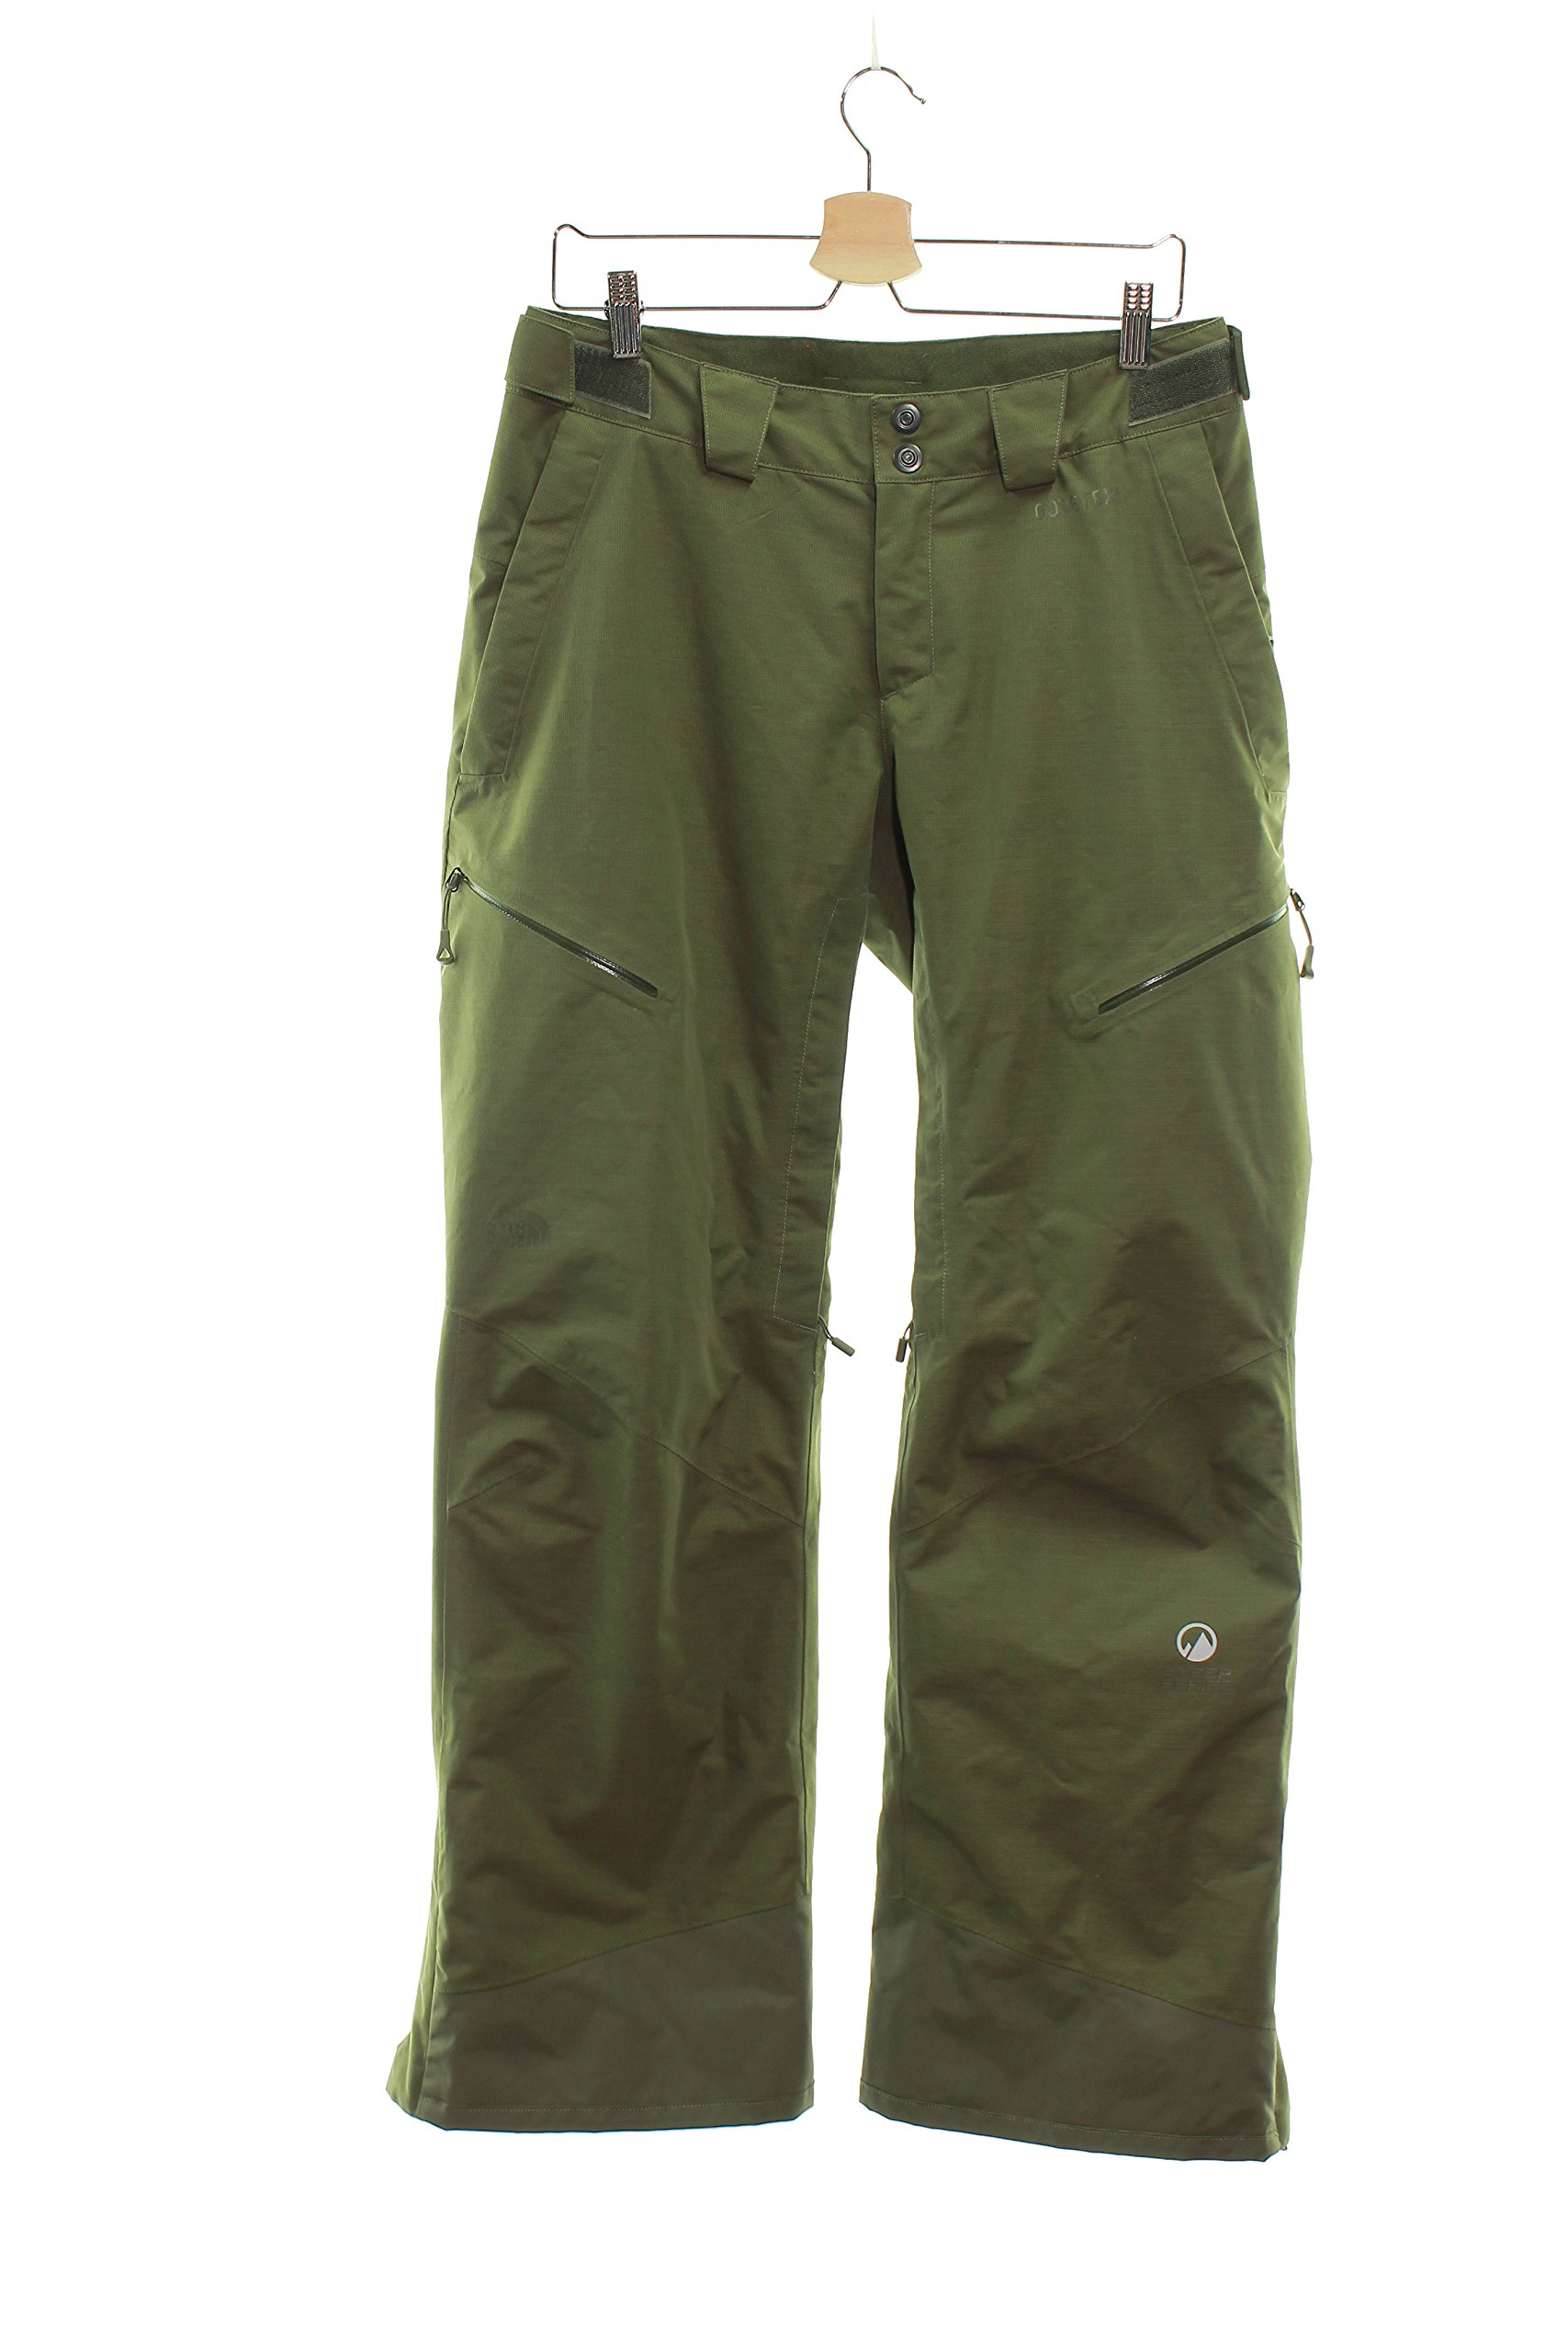 Women's The North Face NFZ Insulated Snow Pants Medium Grape Leaf